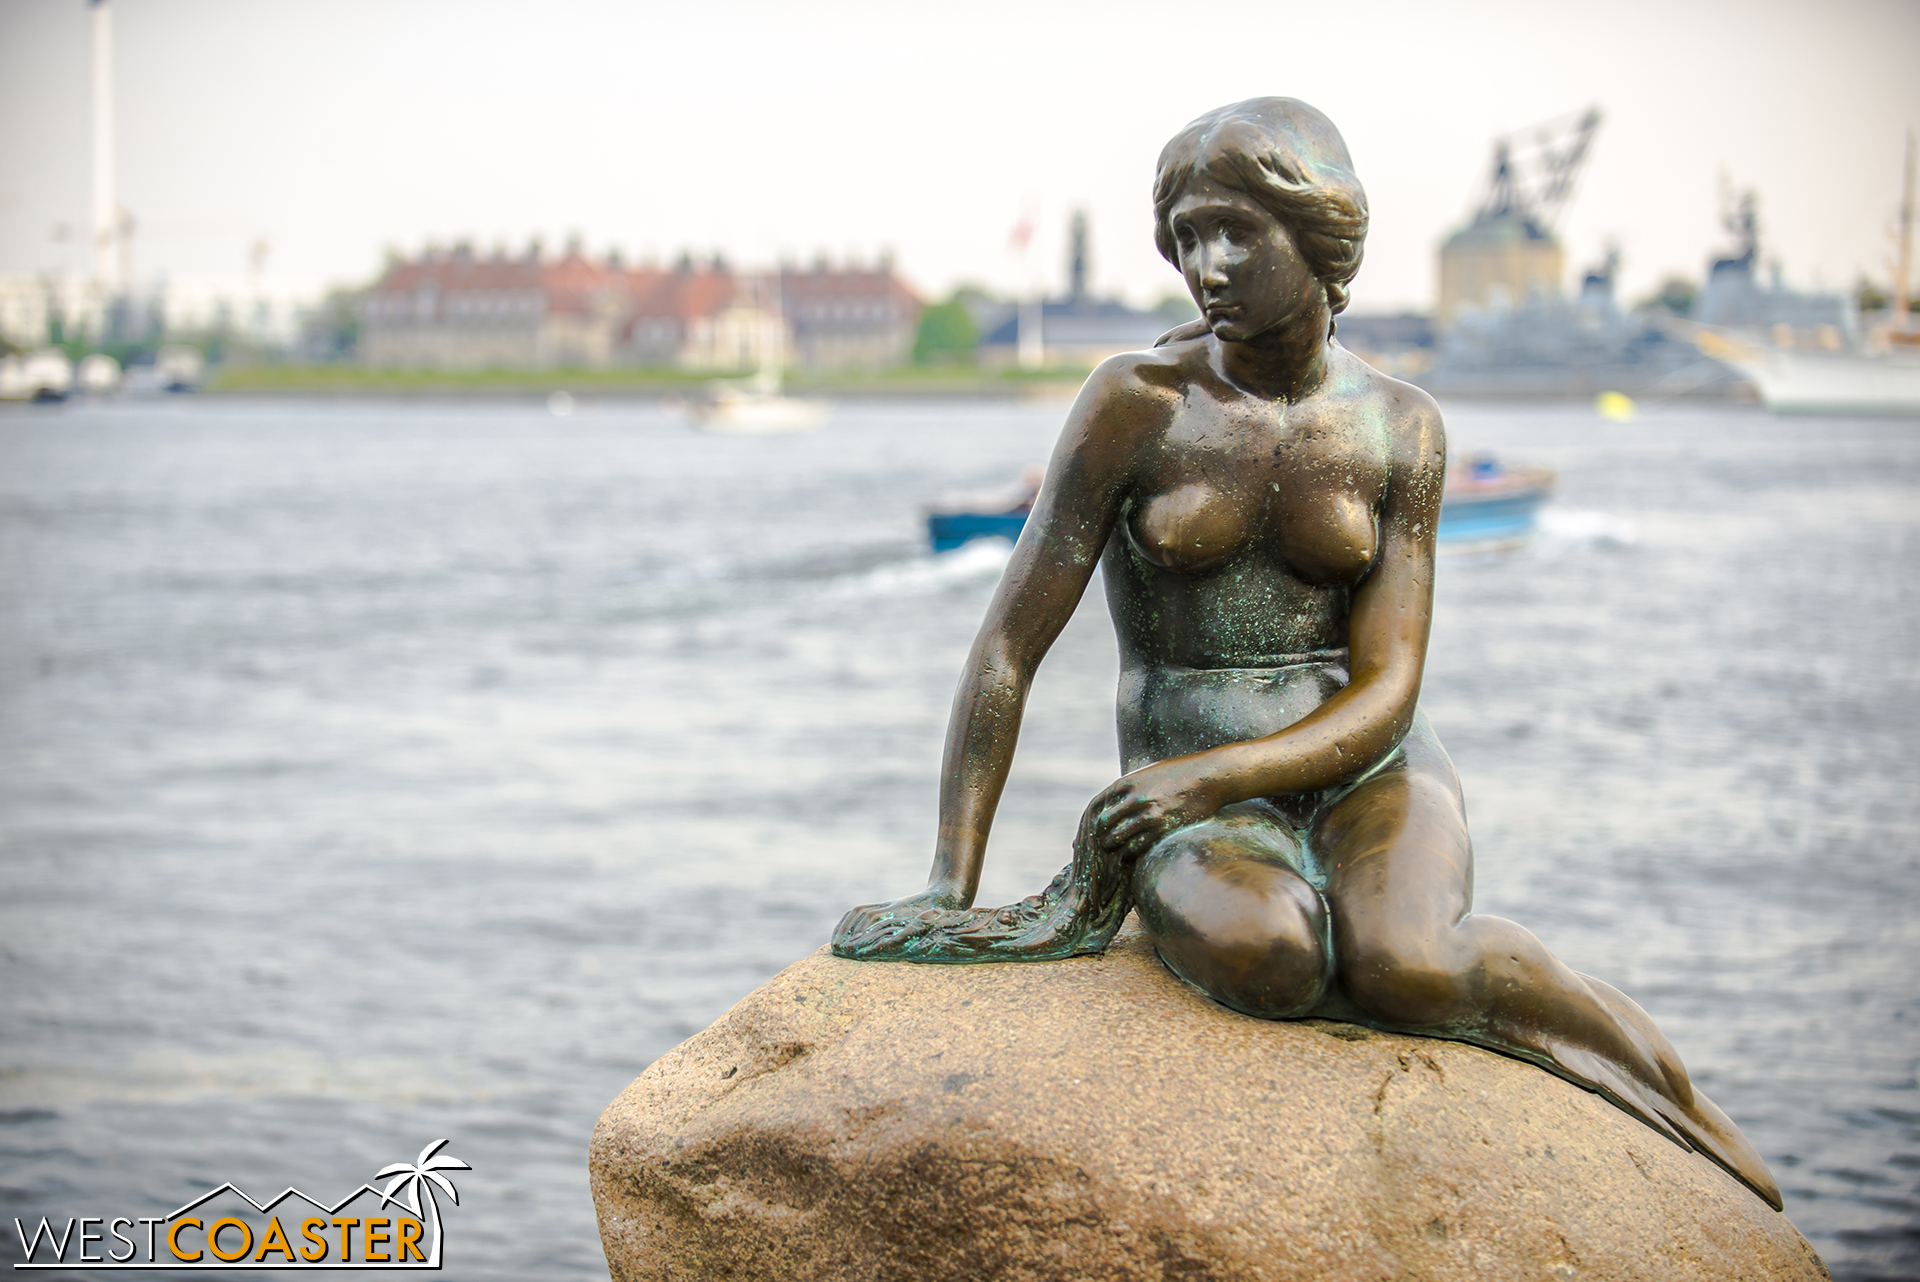 The Little Mermaid statue is located in the Langelinie Pier and Park area on the eastern coastline of the city. It's kind of like the Mona Lisa... much smaller than expected, a symbol of the city, but not necessarily mind-blowing in person.